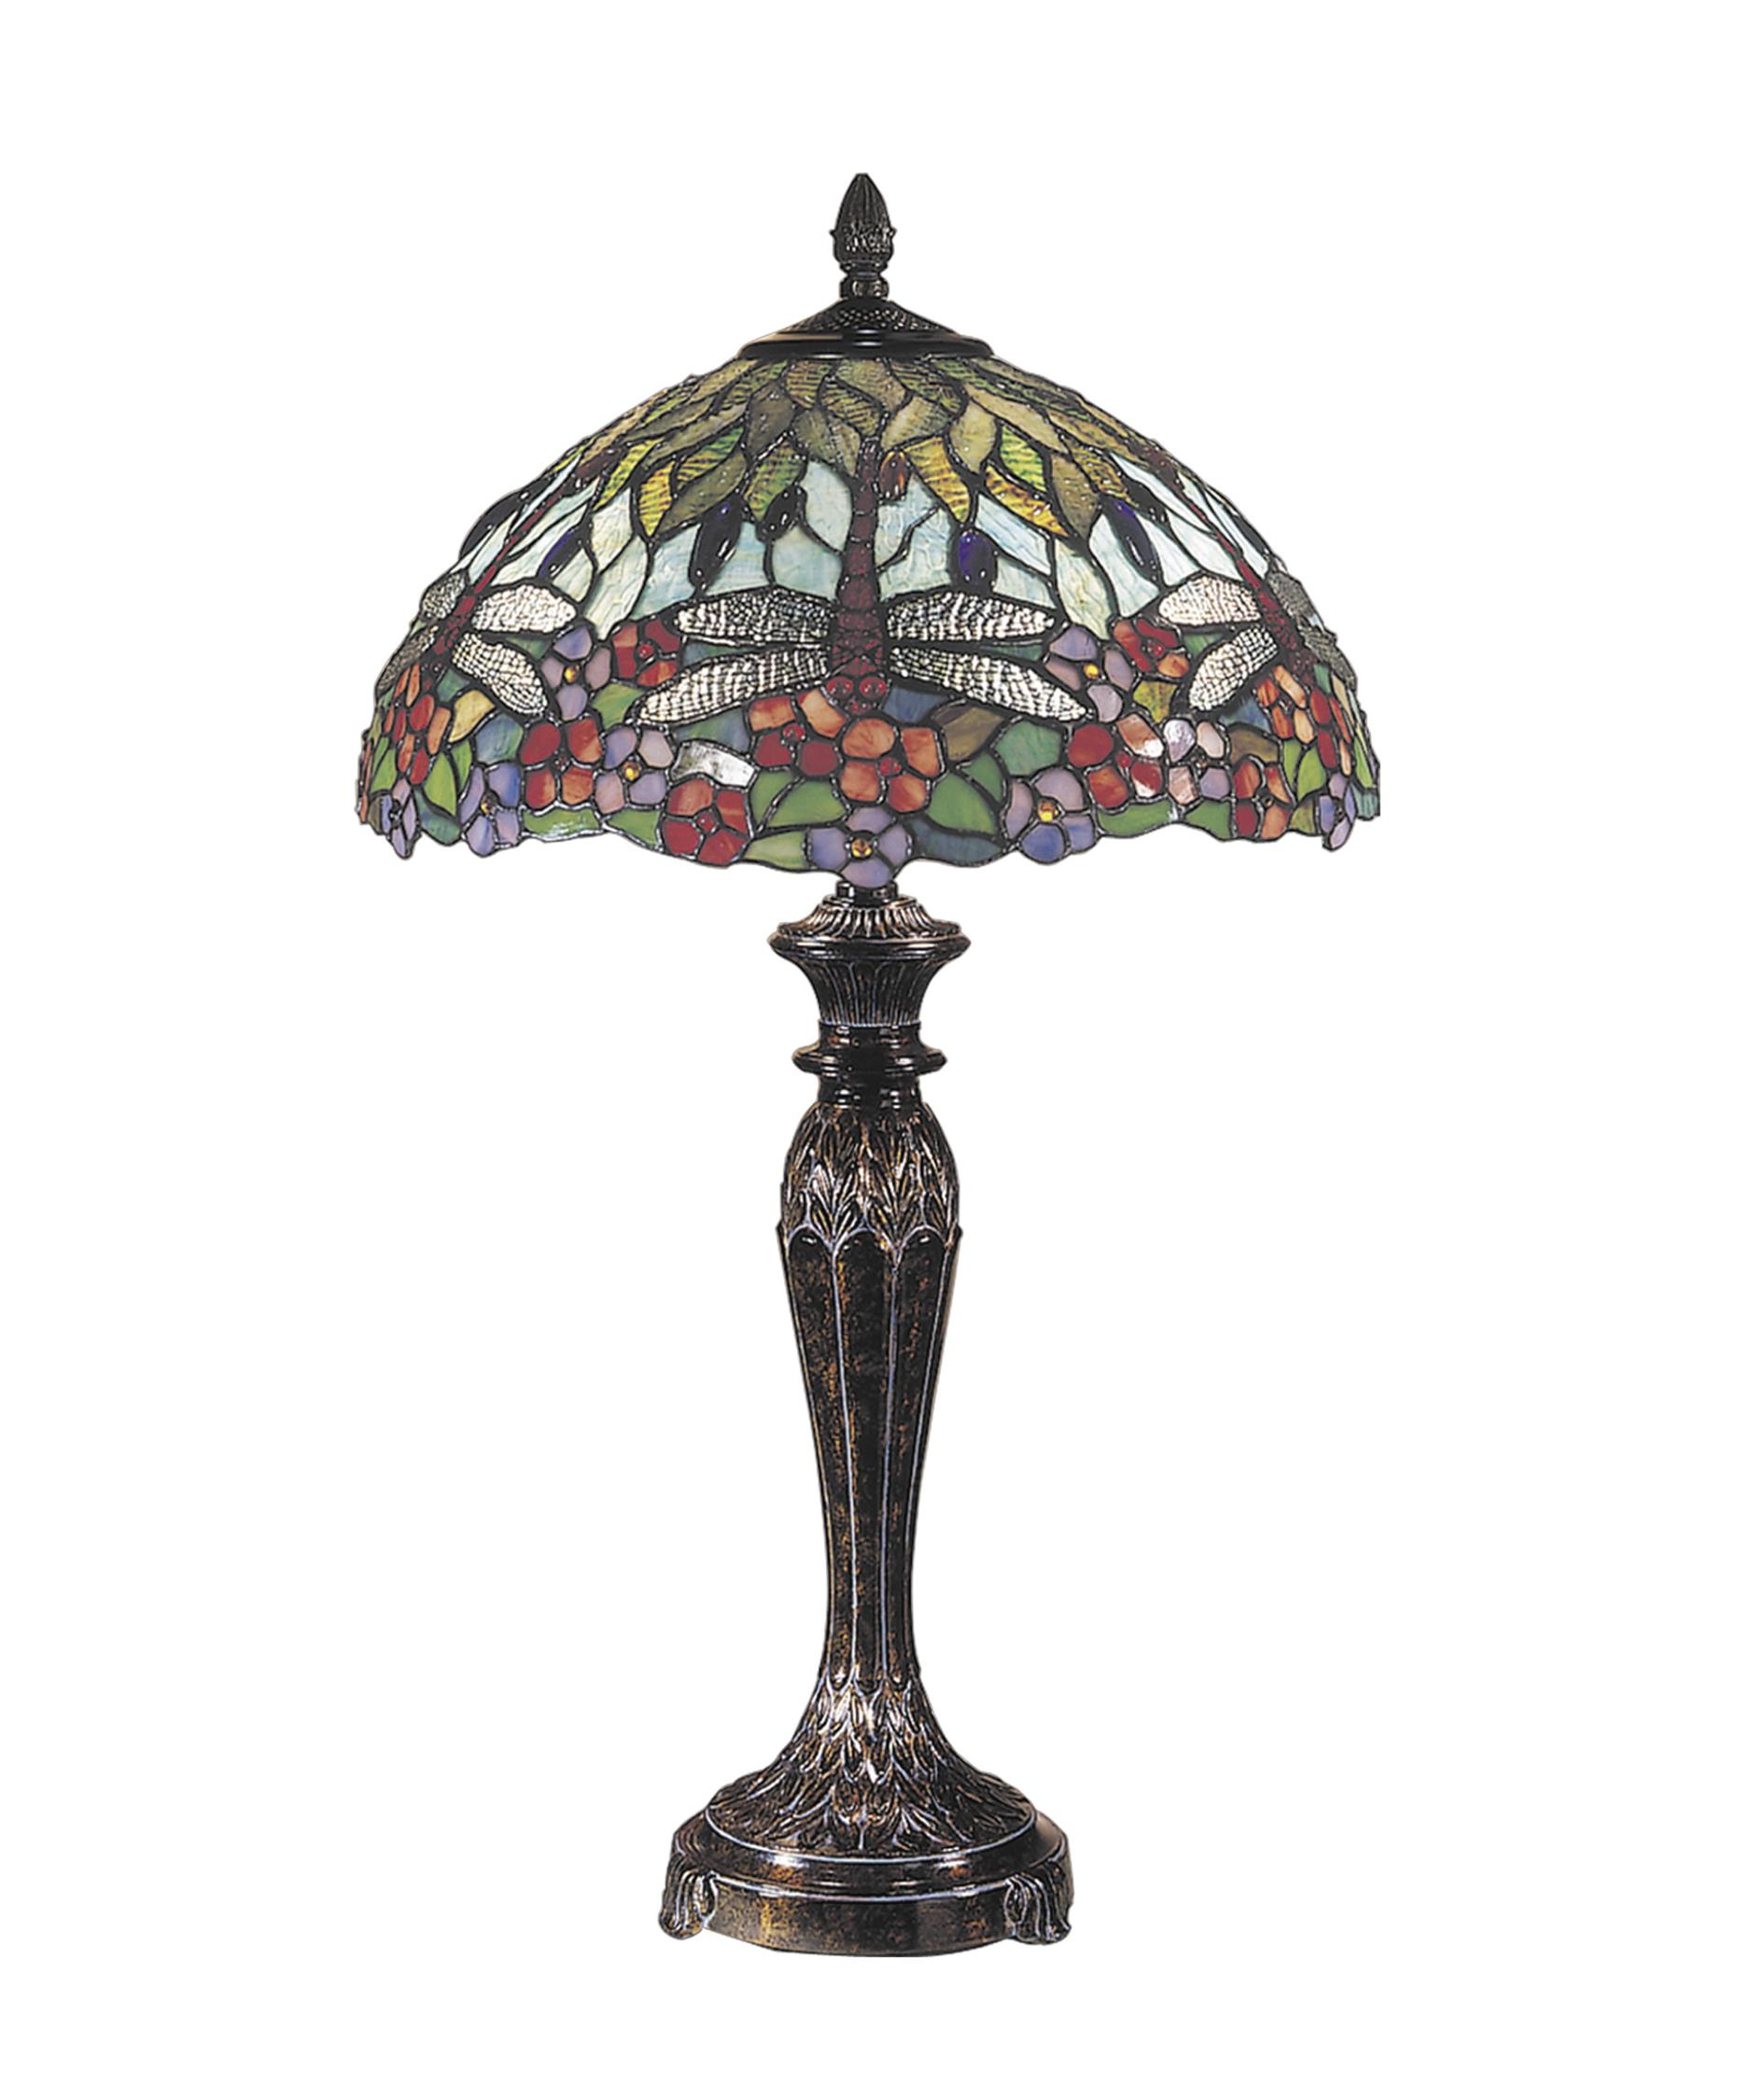 dale tiffany tt100588 dragonfly 29 inch table lamp capitol lighting. Black Bedroom Furniture Sets. Home Design Ideas